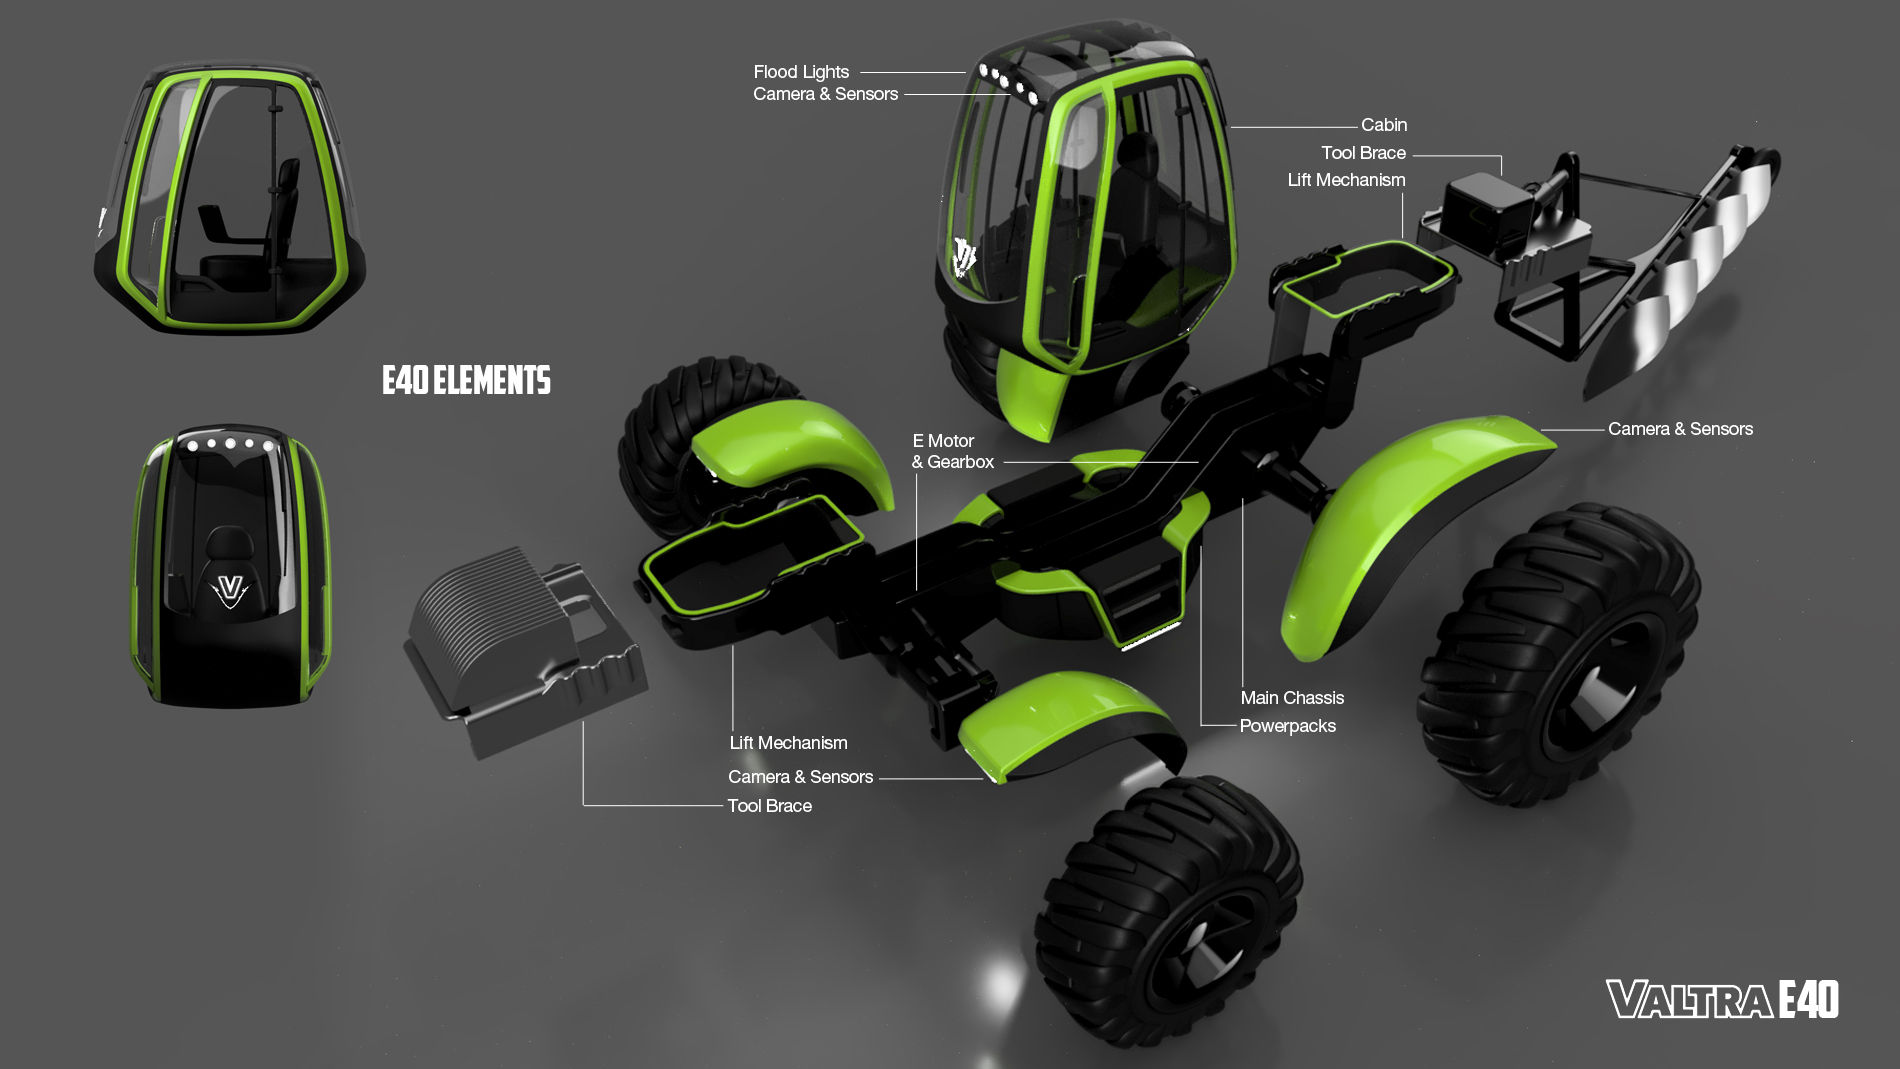 Tractor Chassis Design : Valtra e electric powered tractor autodesk online gallery